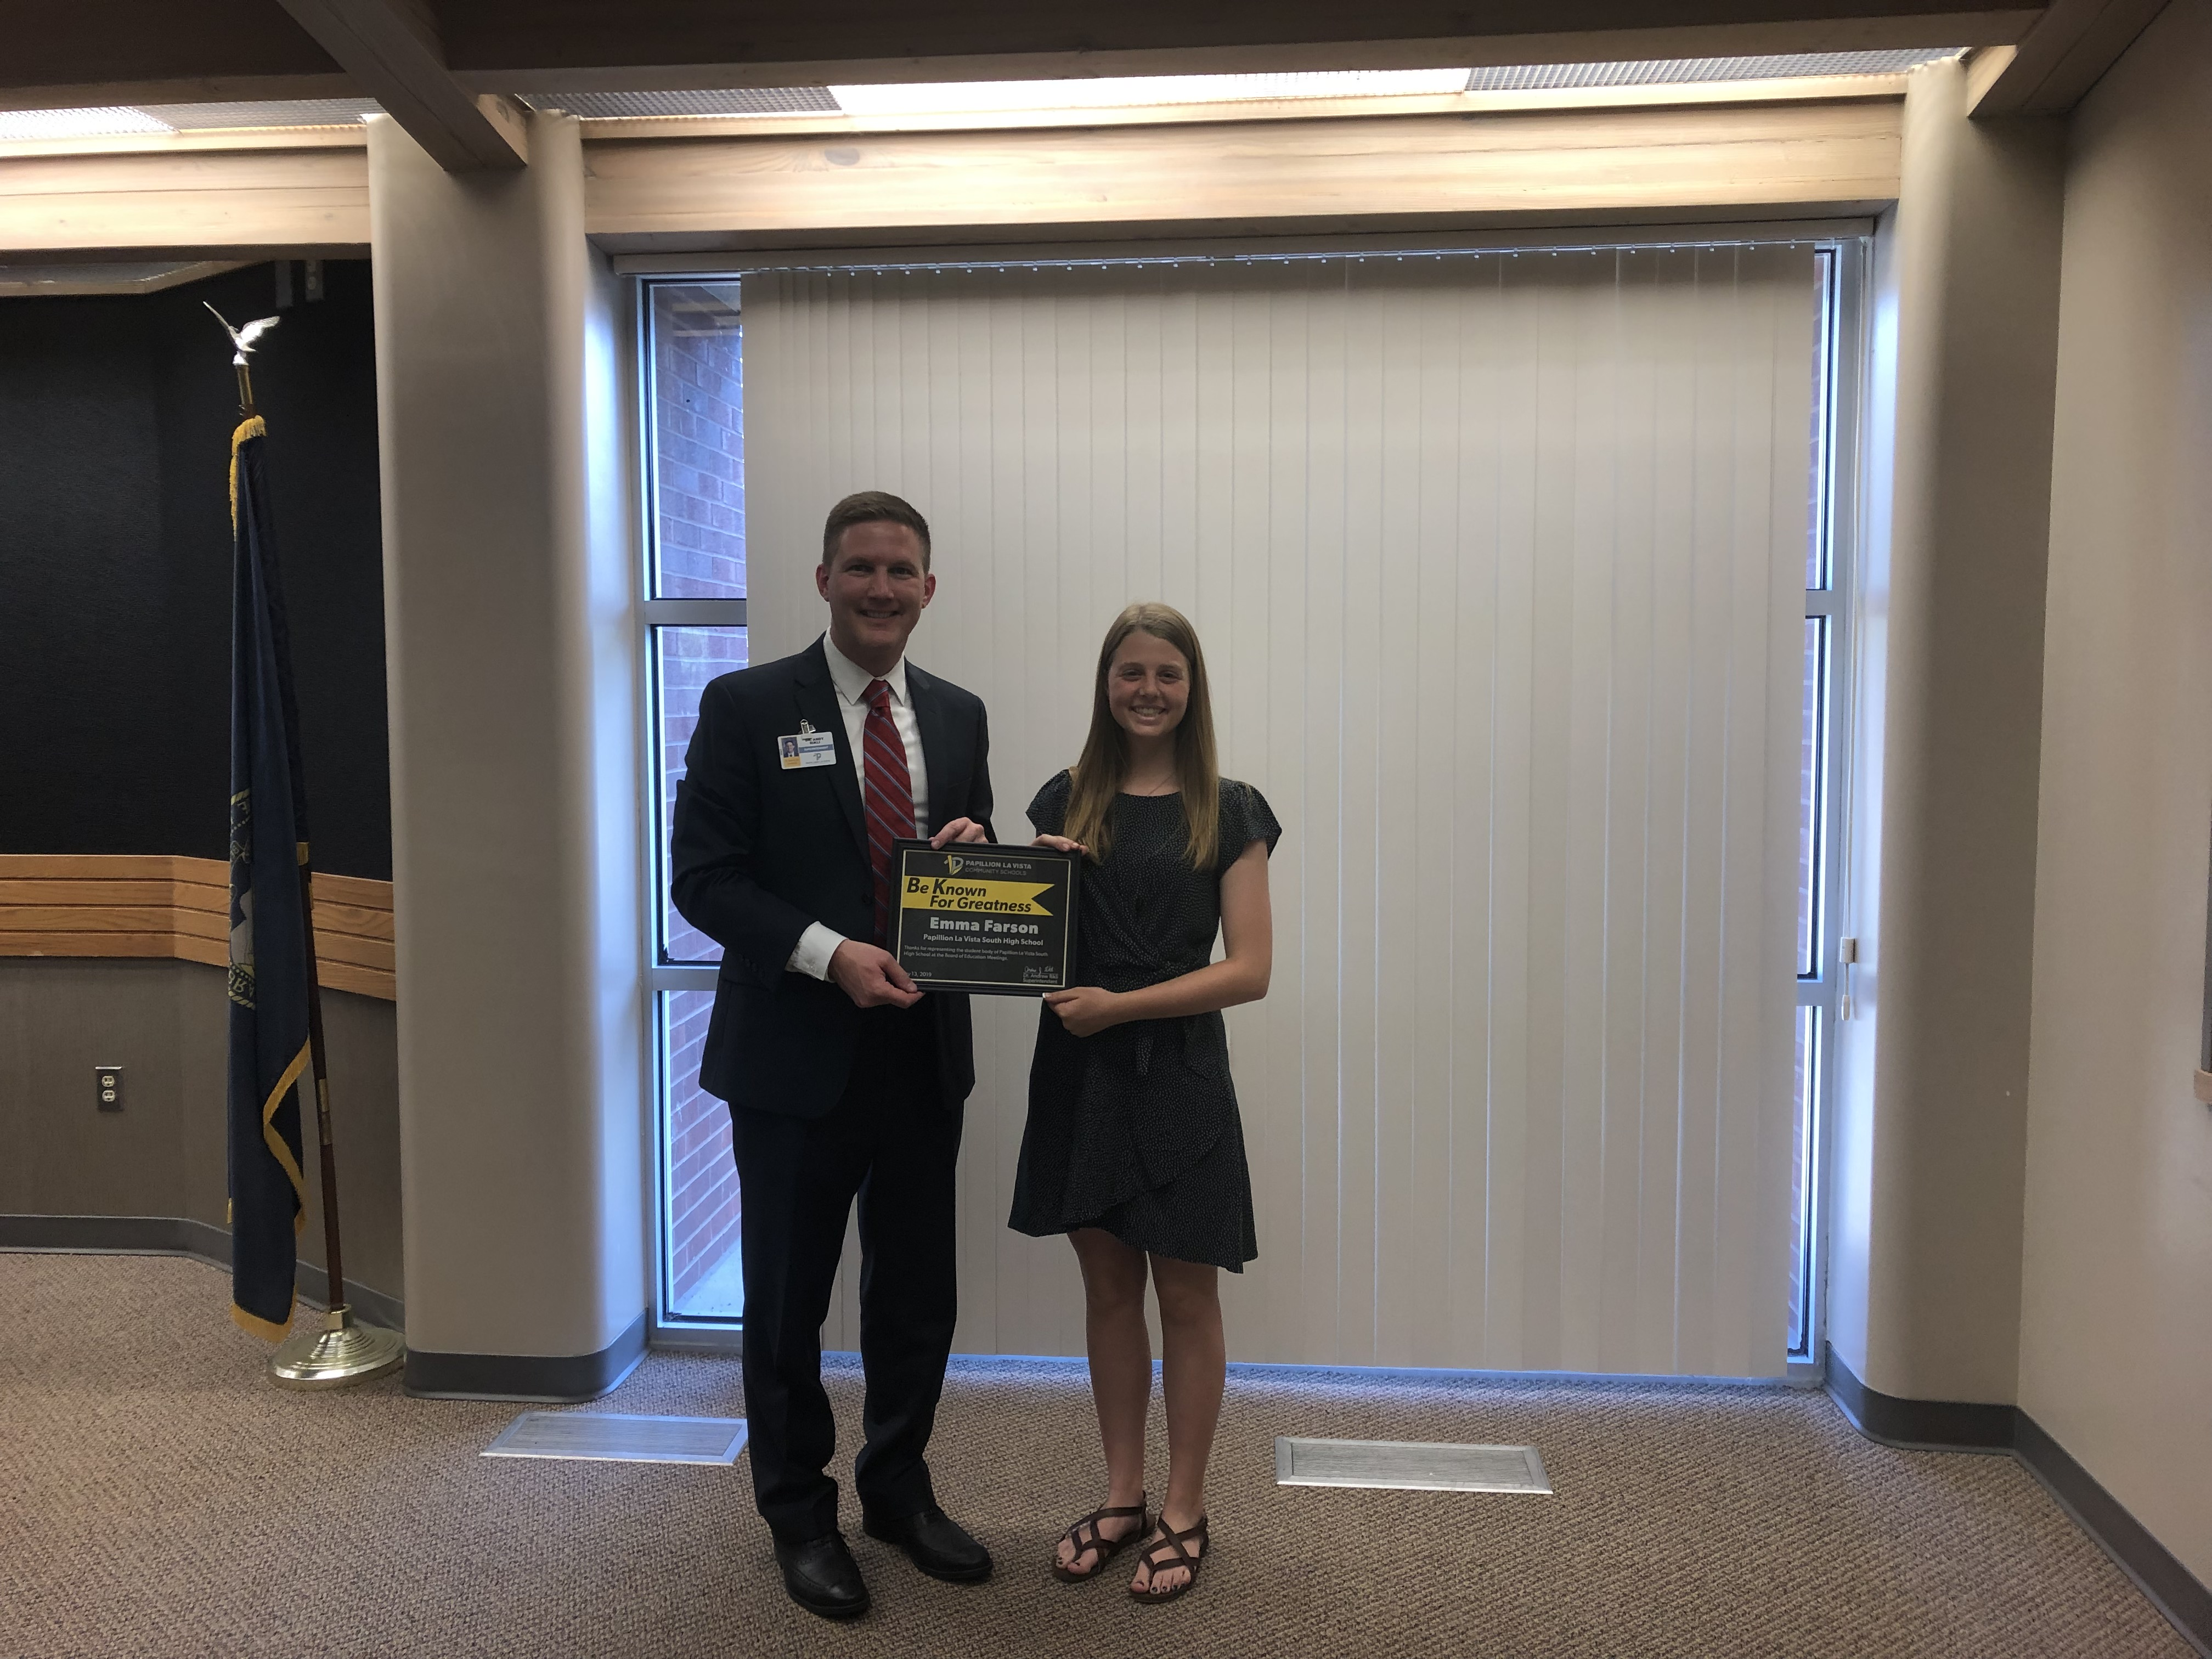 Emma Farson stands with Dr. Rikli to accept award